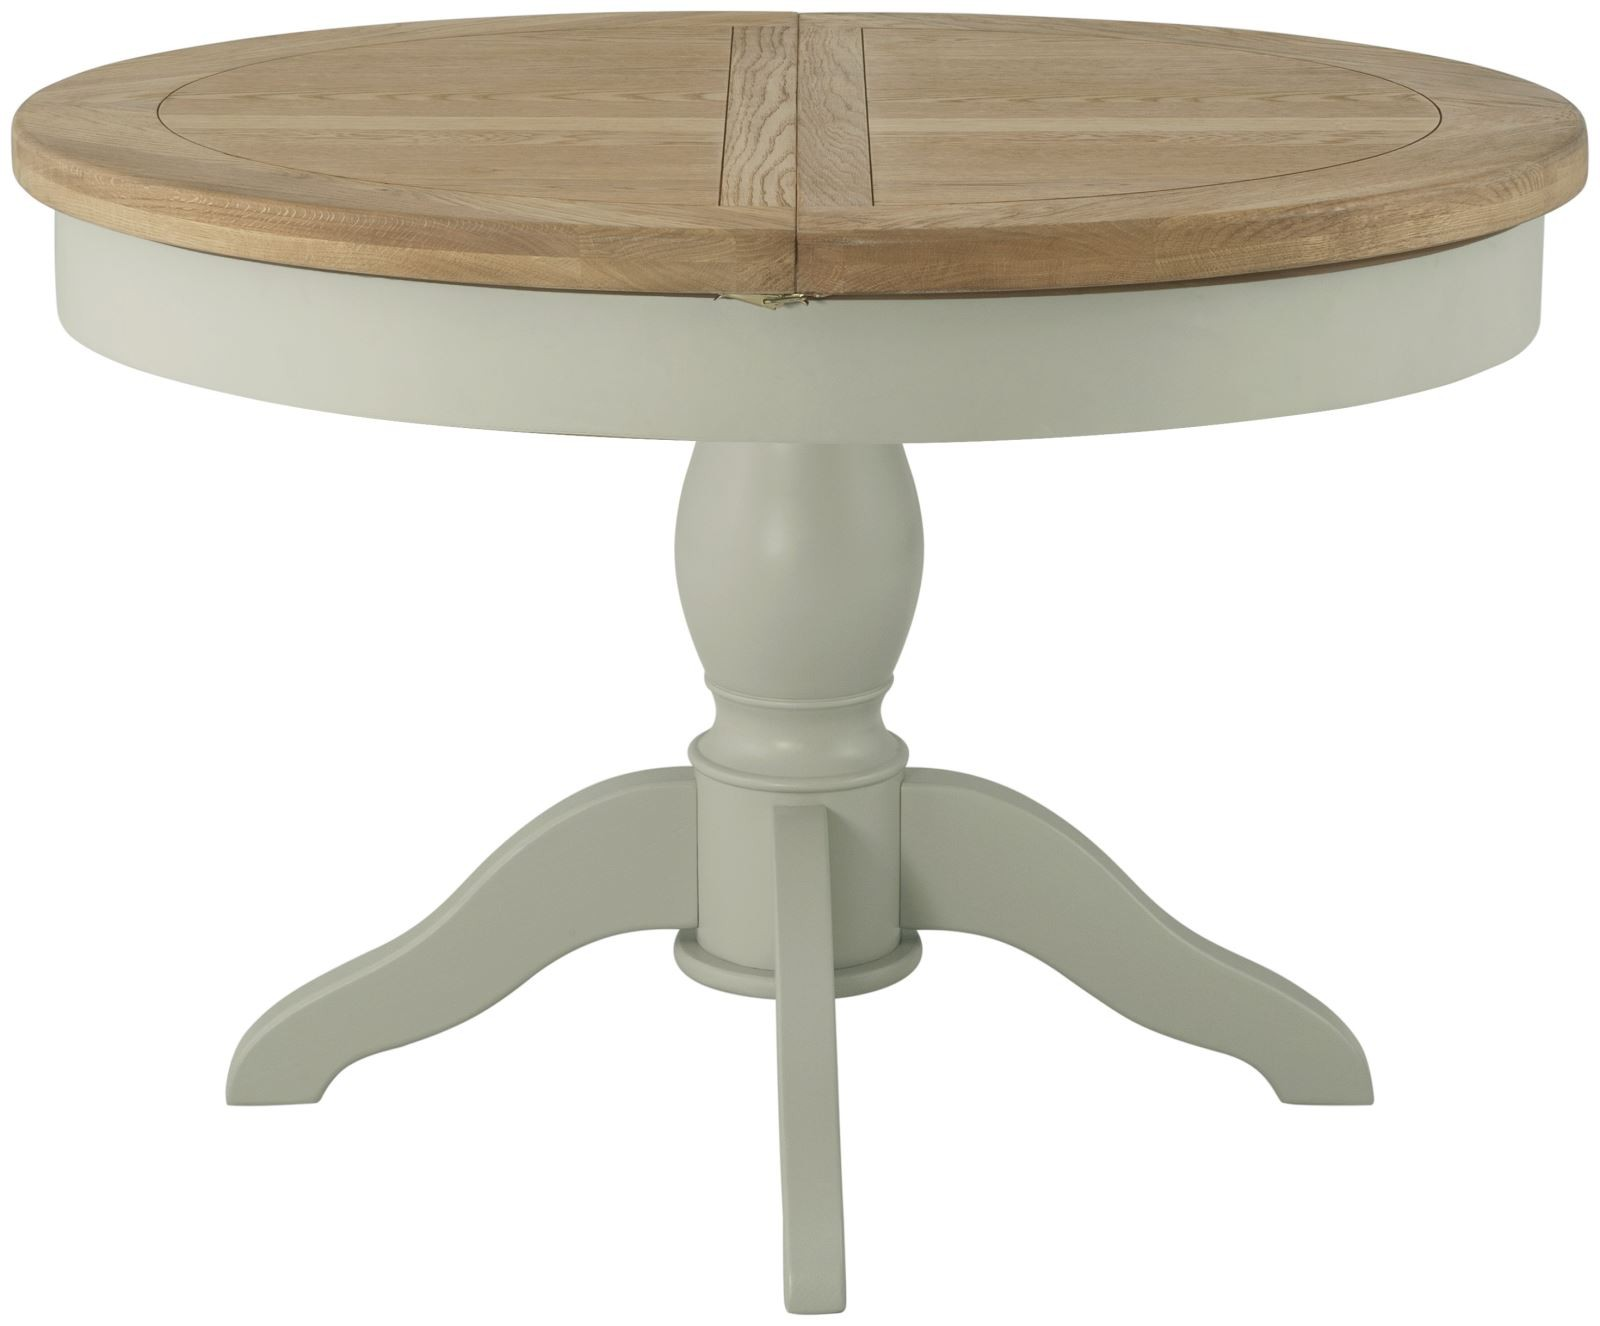 PRESTON Round Butterfly Extending Dining Table